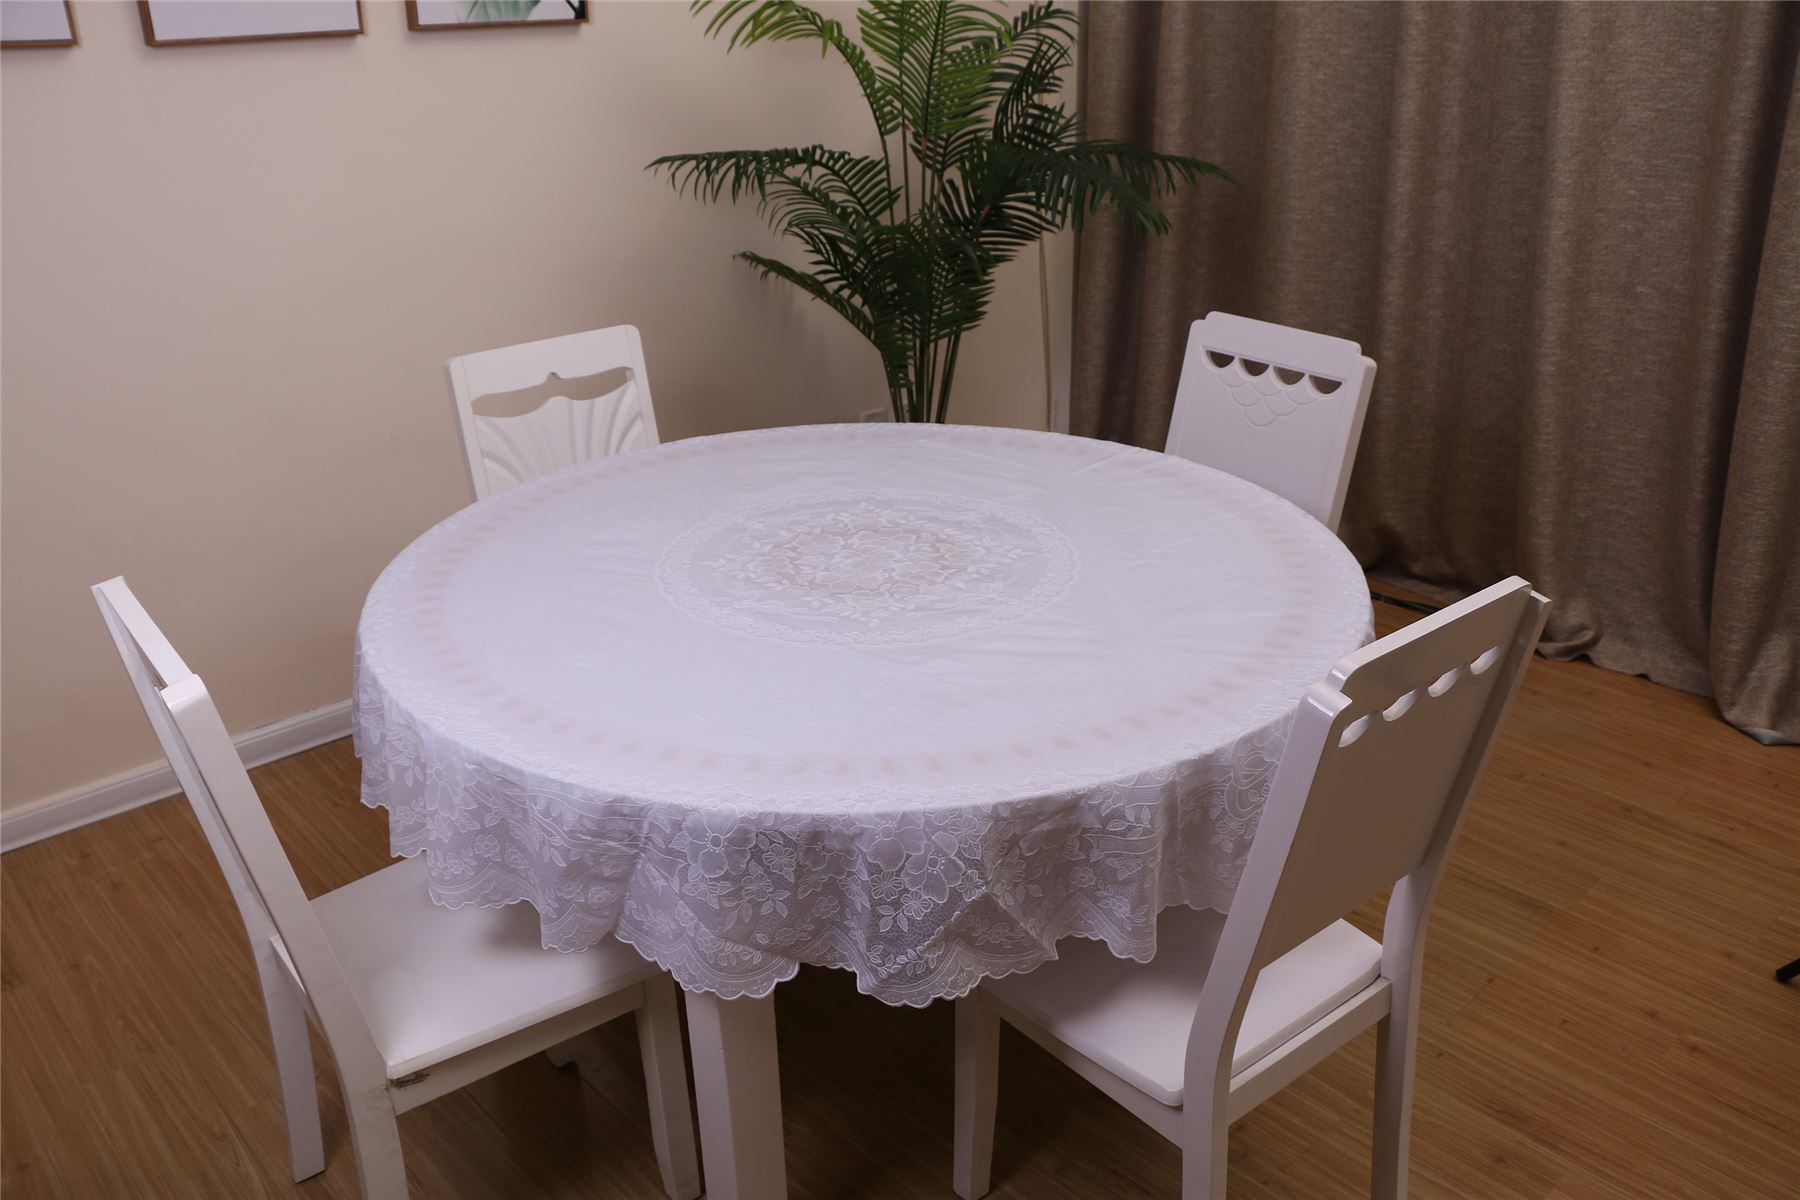 Vinyl Jacquard Design Embossed Lace Tablecloth Cover Round